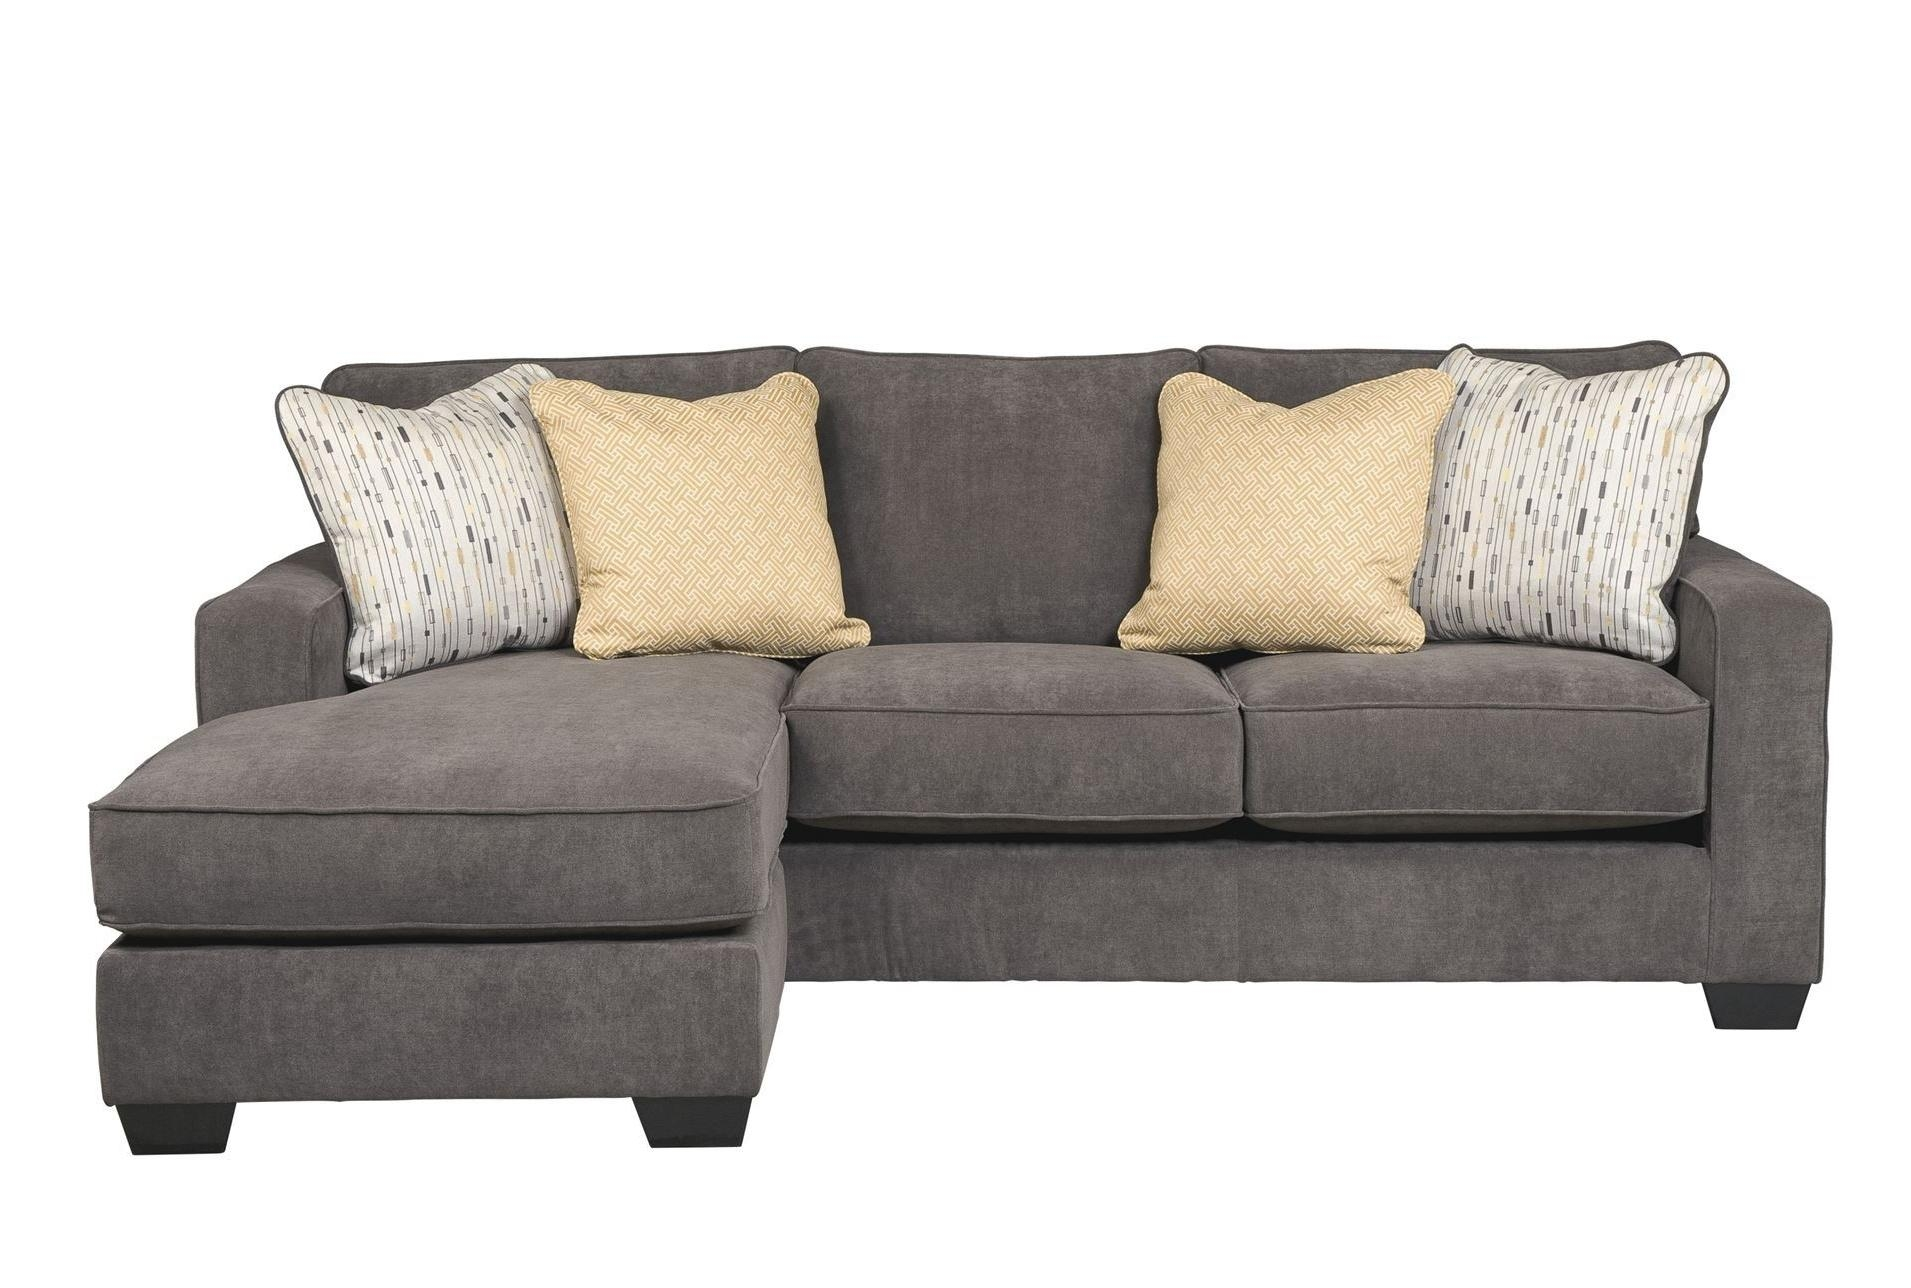 Sectional Sofa With Chaise Covers | Tehranmix Decoration In Chaise Sofa Covers (View 5 of 20)